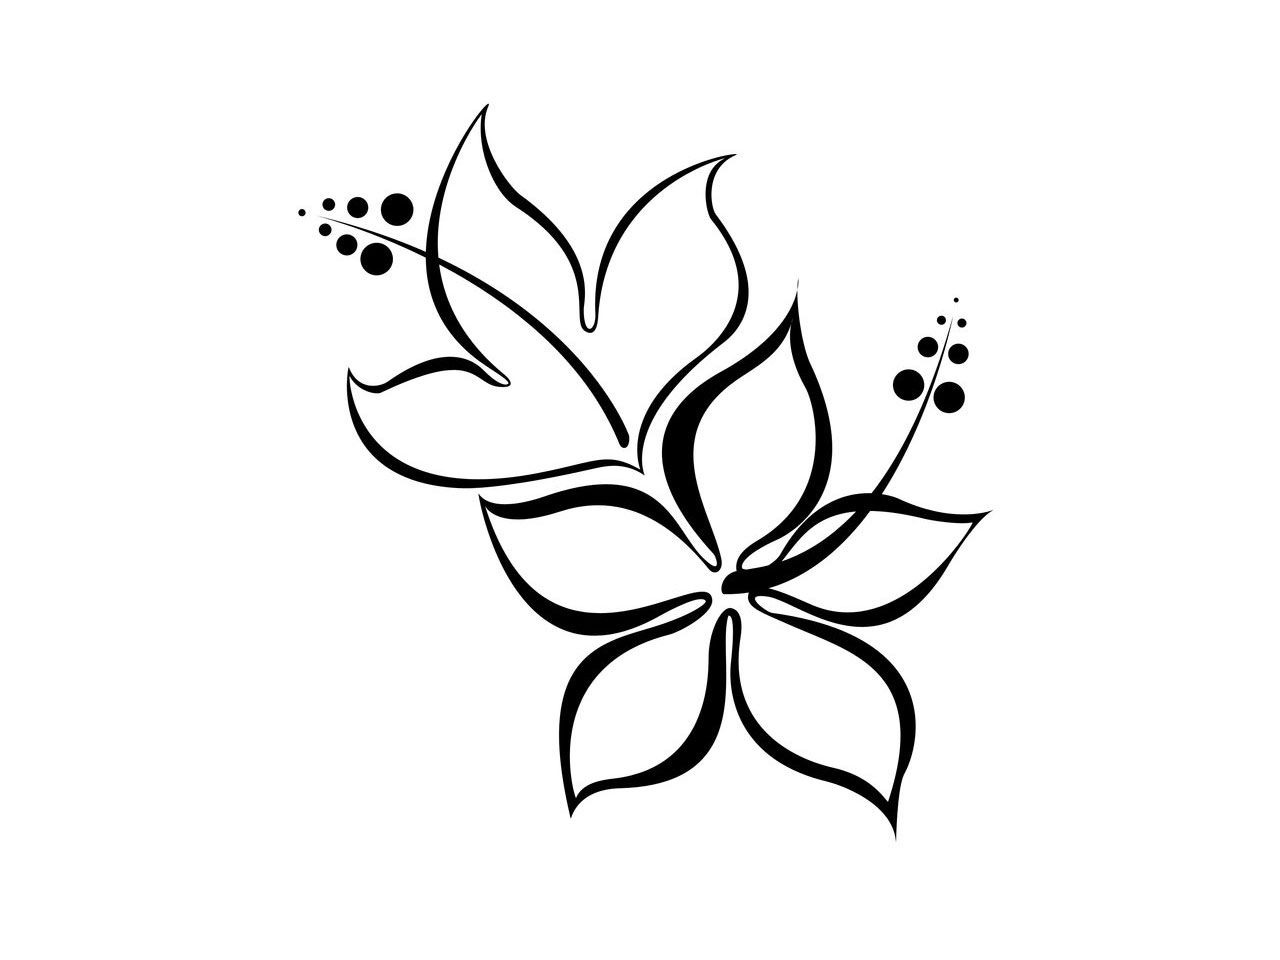 1280x960 Simple Floral Designs For Drawing For Those Interested In Getting